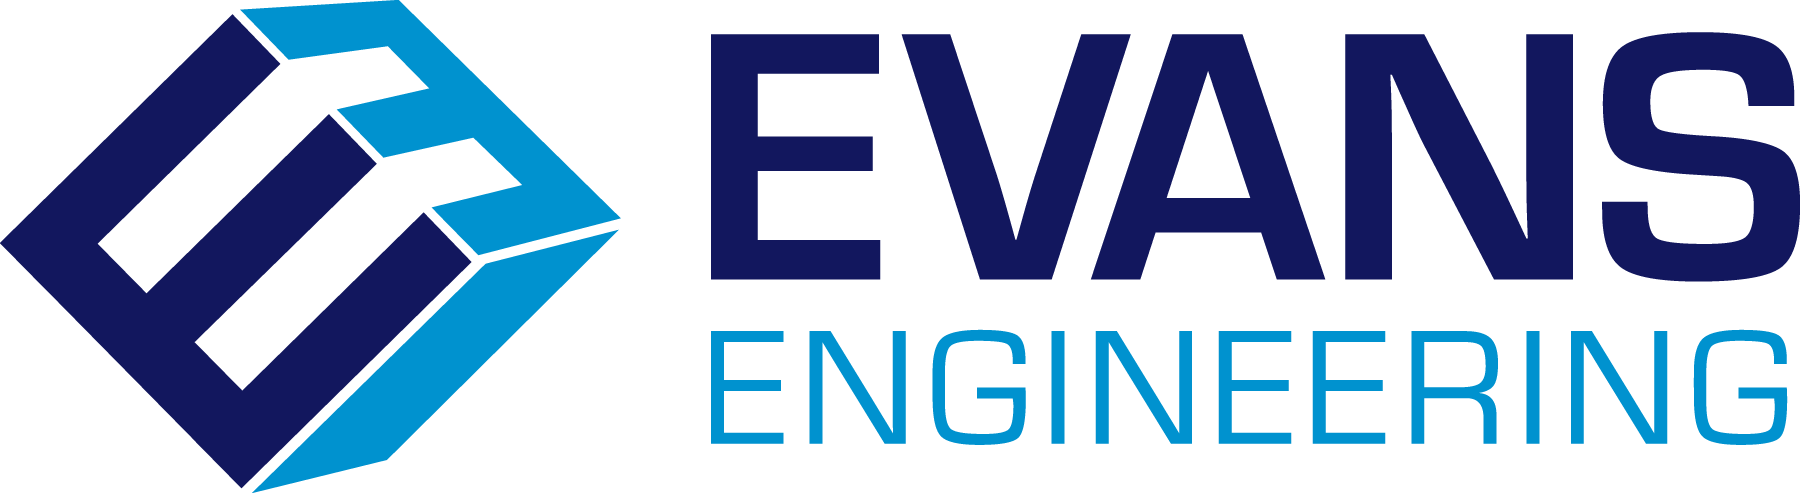 Evans Engineering